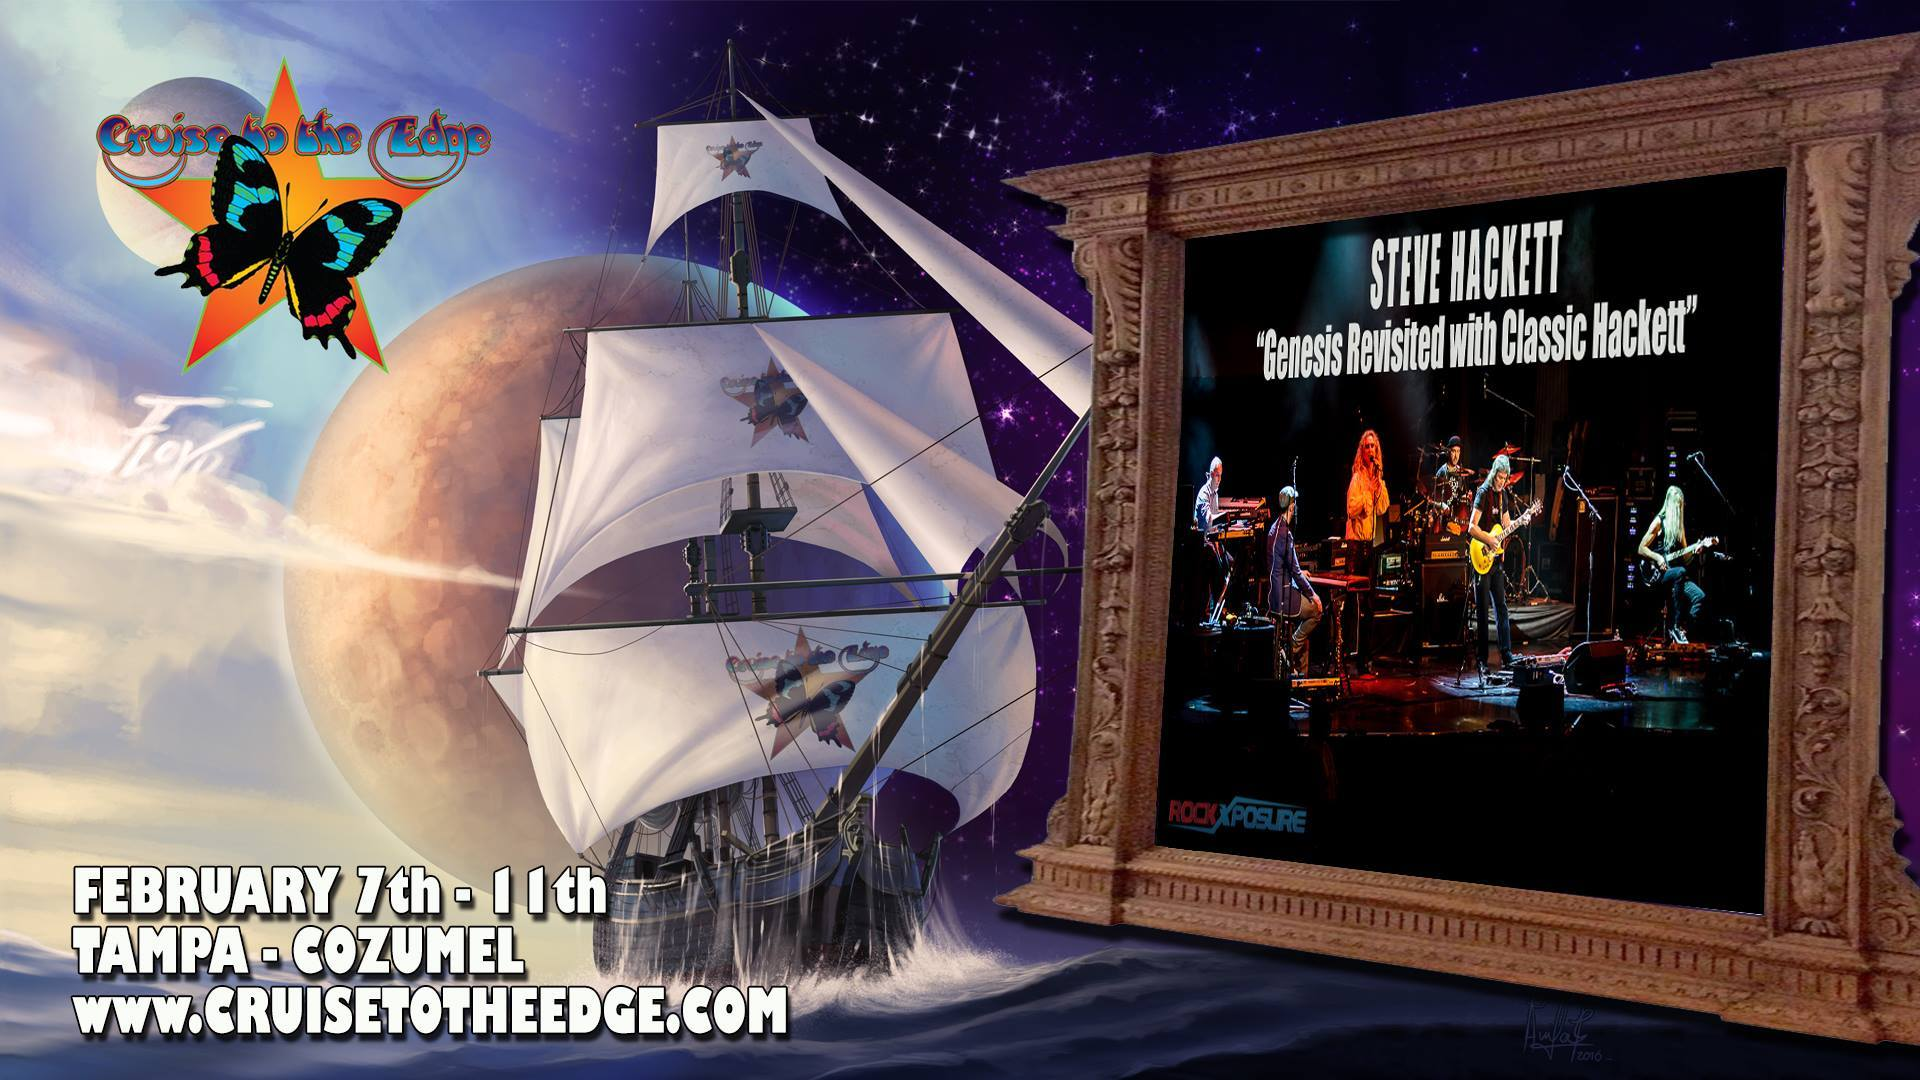 Cruise to the Edge 2017 feat. Steve Hackett